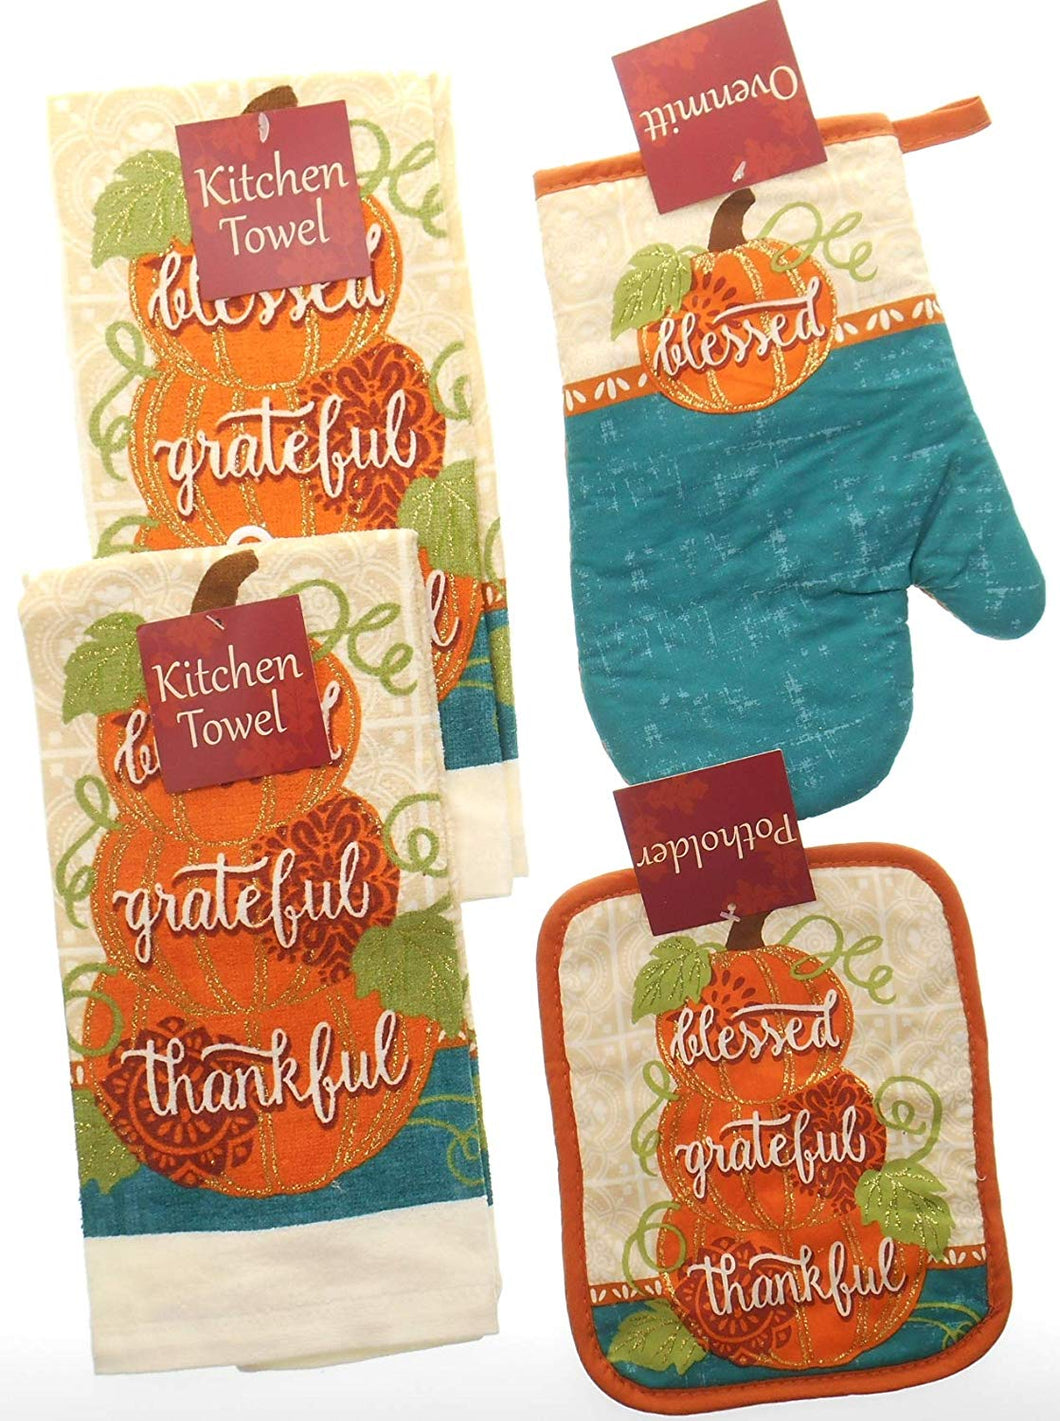 Pumpkins 4 pc Kitchen Linen Set Towels Potholder Oven Mitt Grateful Thankful